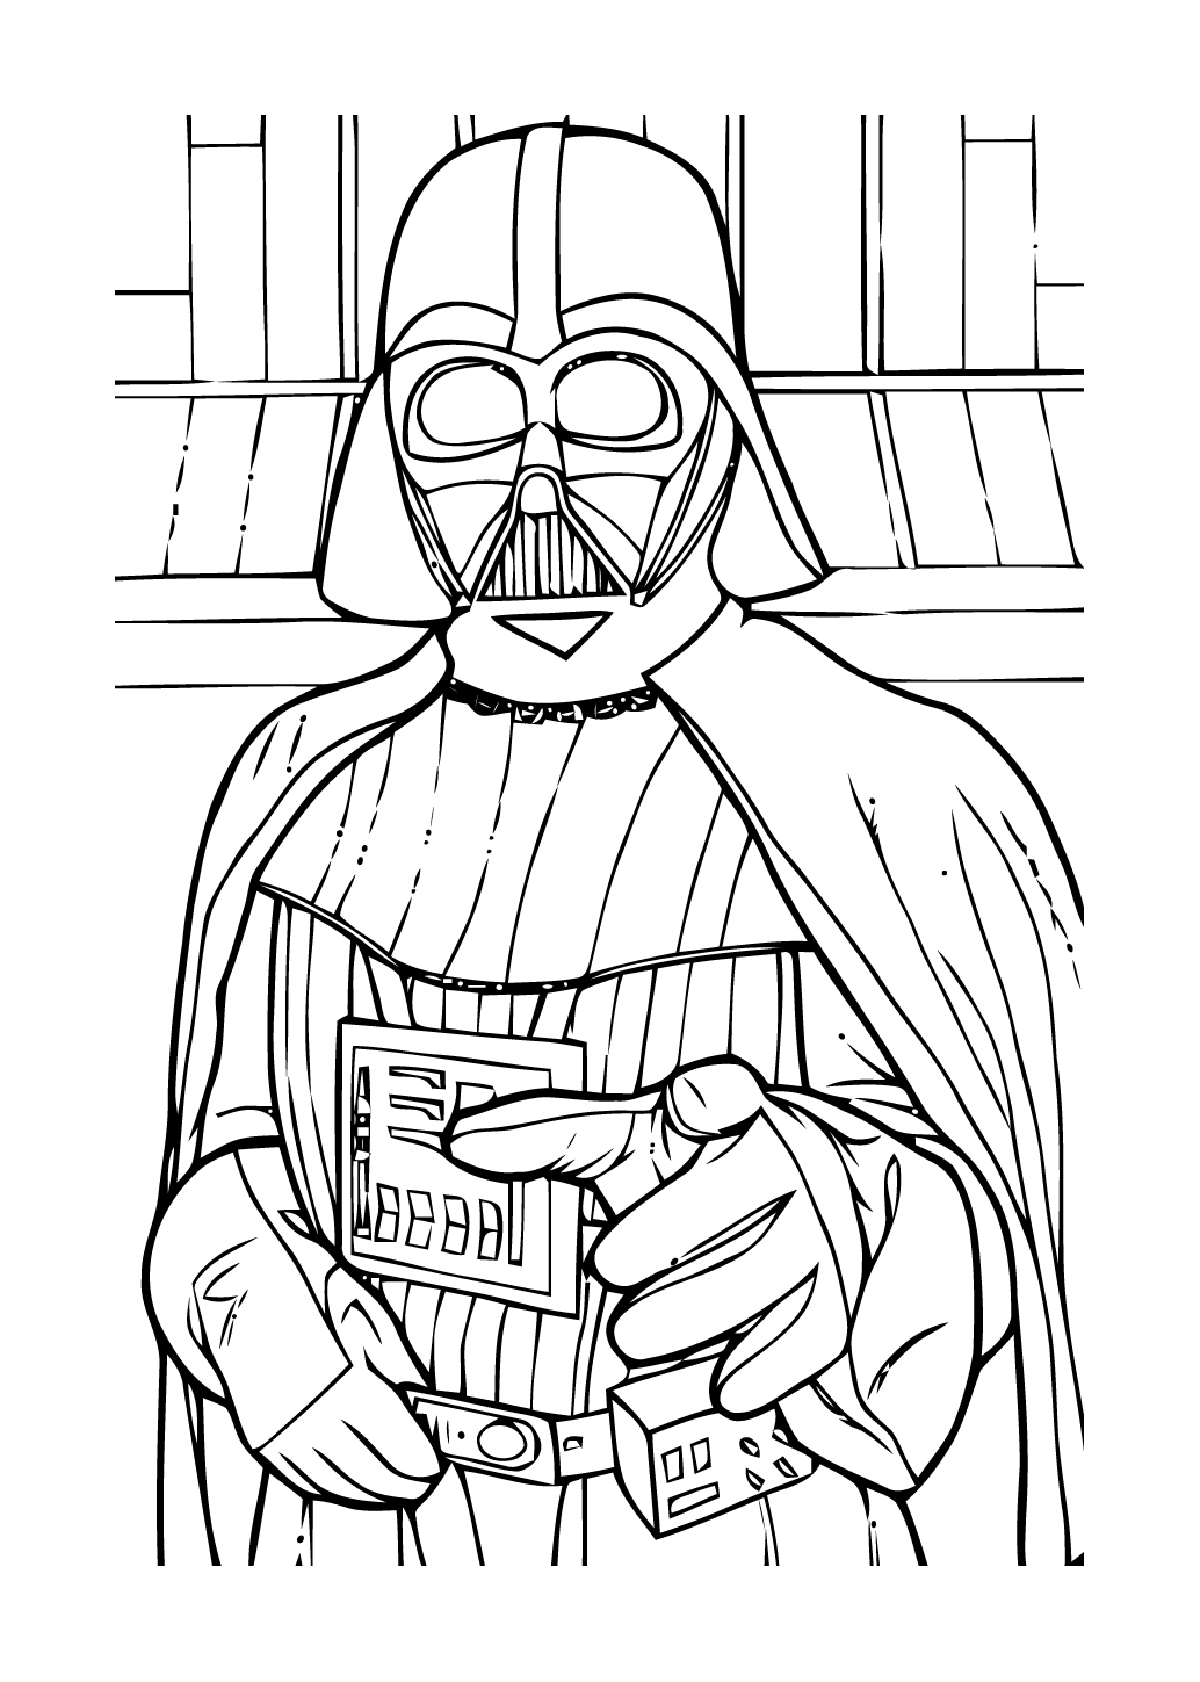 star wars coloring pages for kids star wars to color for kids star wars kids coloring pages for star pages wars kids coloring